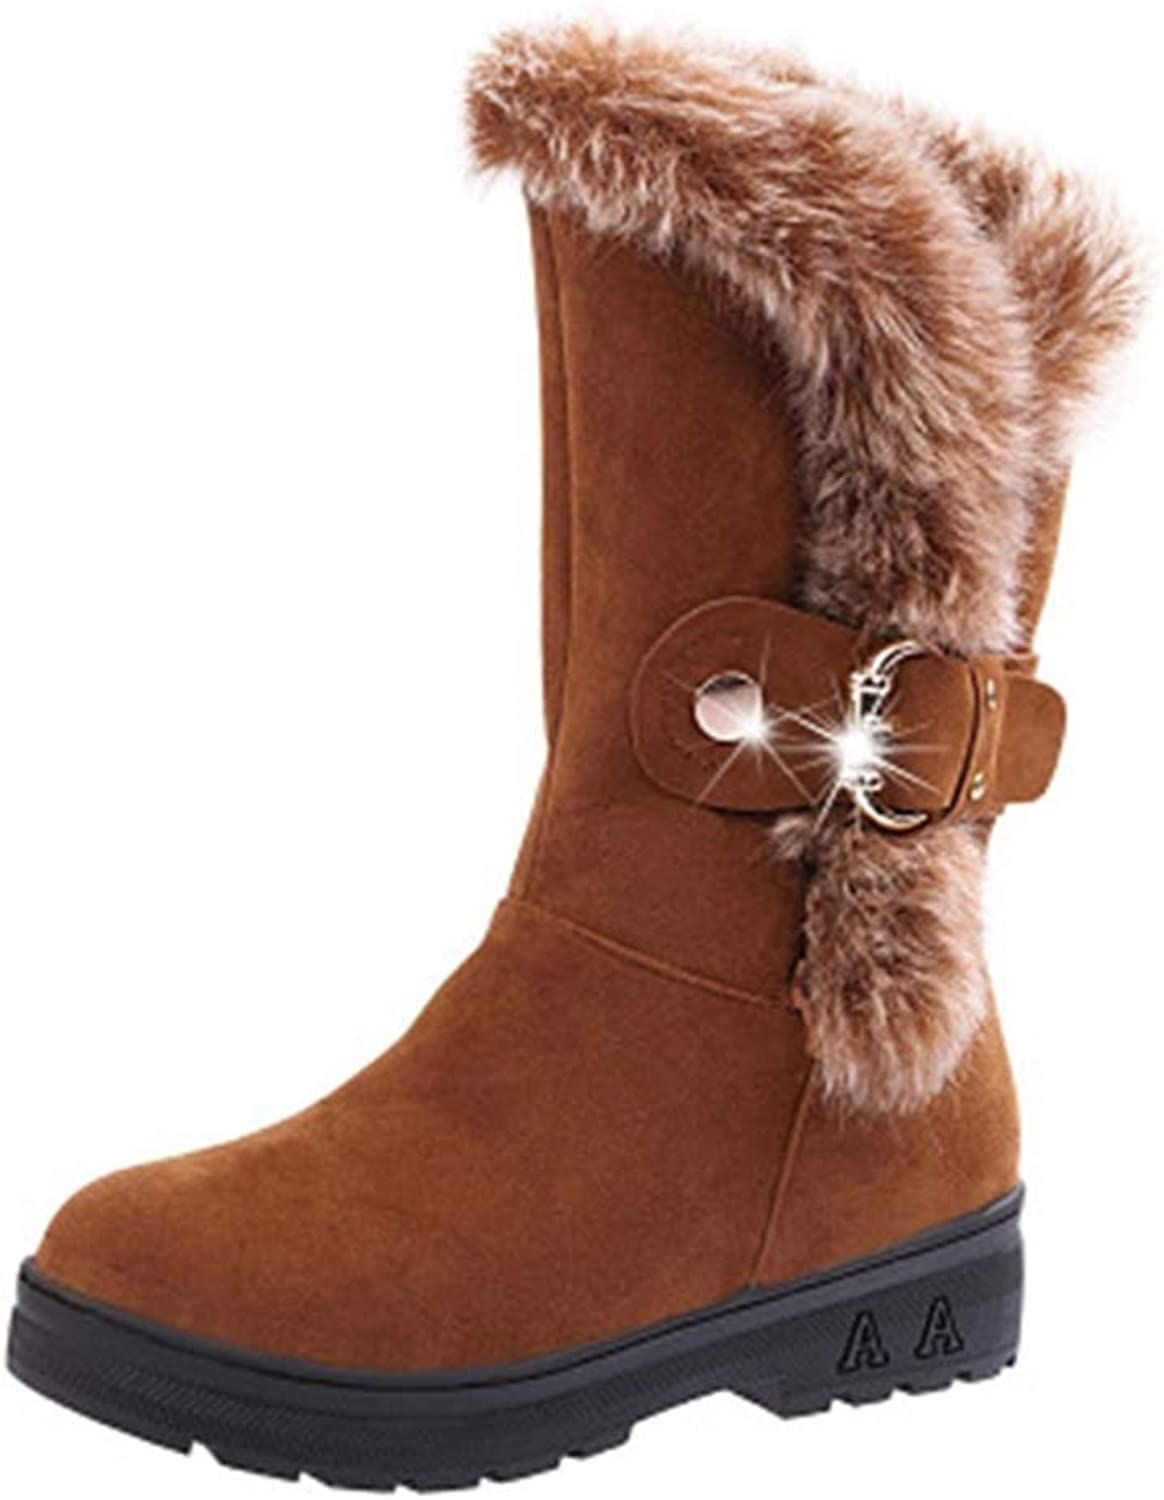 GIY Women's Winter Warm Fur Snow Boots Mid Calf Buckle Waterproof Platform Slip On Fashion Wide Snow Boots